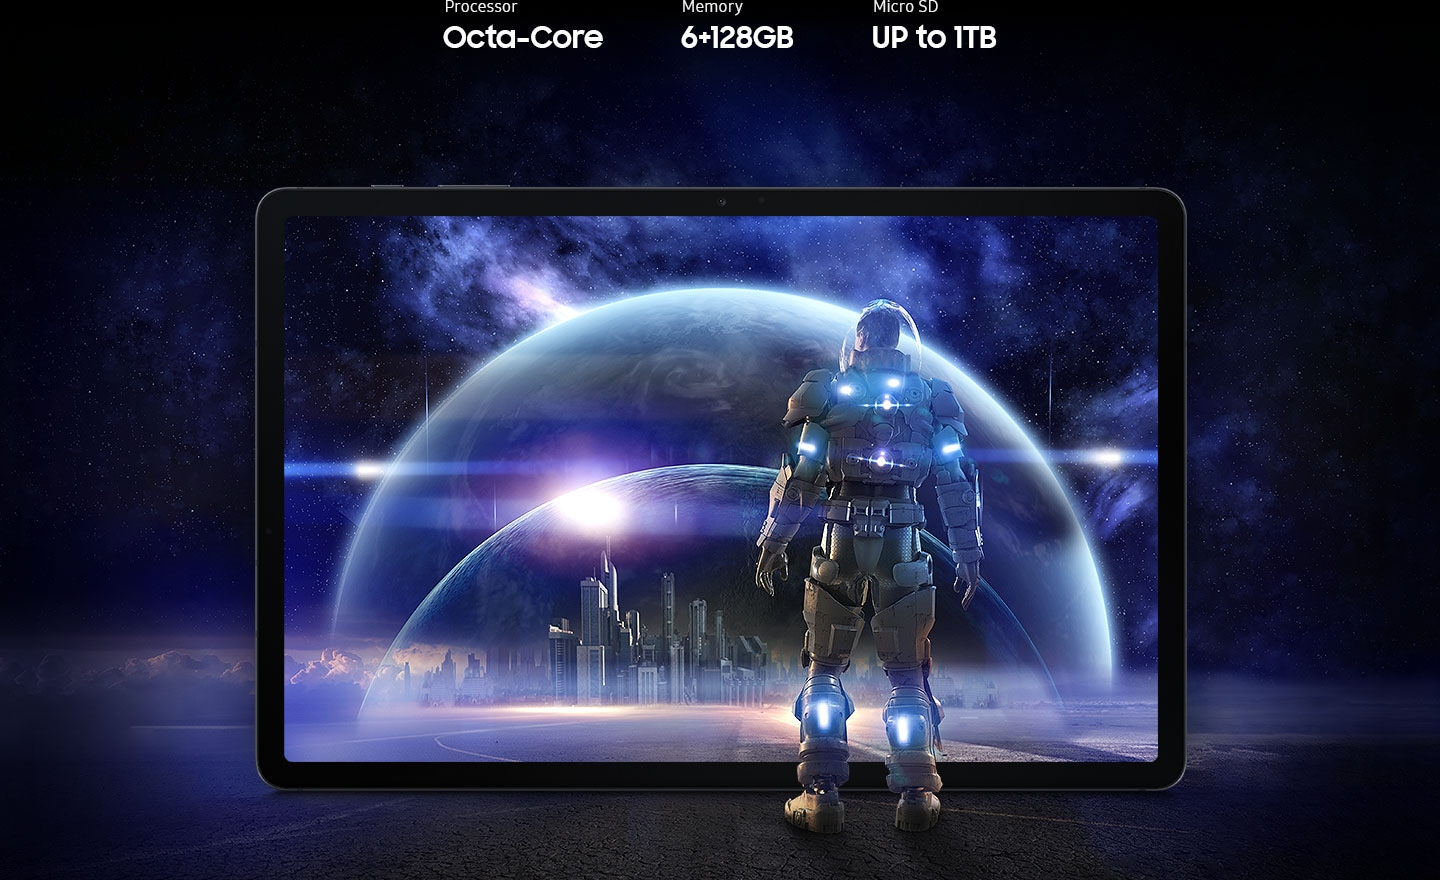 Galaxy Tab S7 FE 5G seen from the front with a futuristic scene from a game onscreen. A person in a spacesuit stands in front of the screen, staring into the scene of glass bubbles surrounding a cityscape. Text says Processor Octa-core, Memory 4 plus 64GB, 6 plus 128GB, MicroSD up to 1TB.